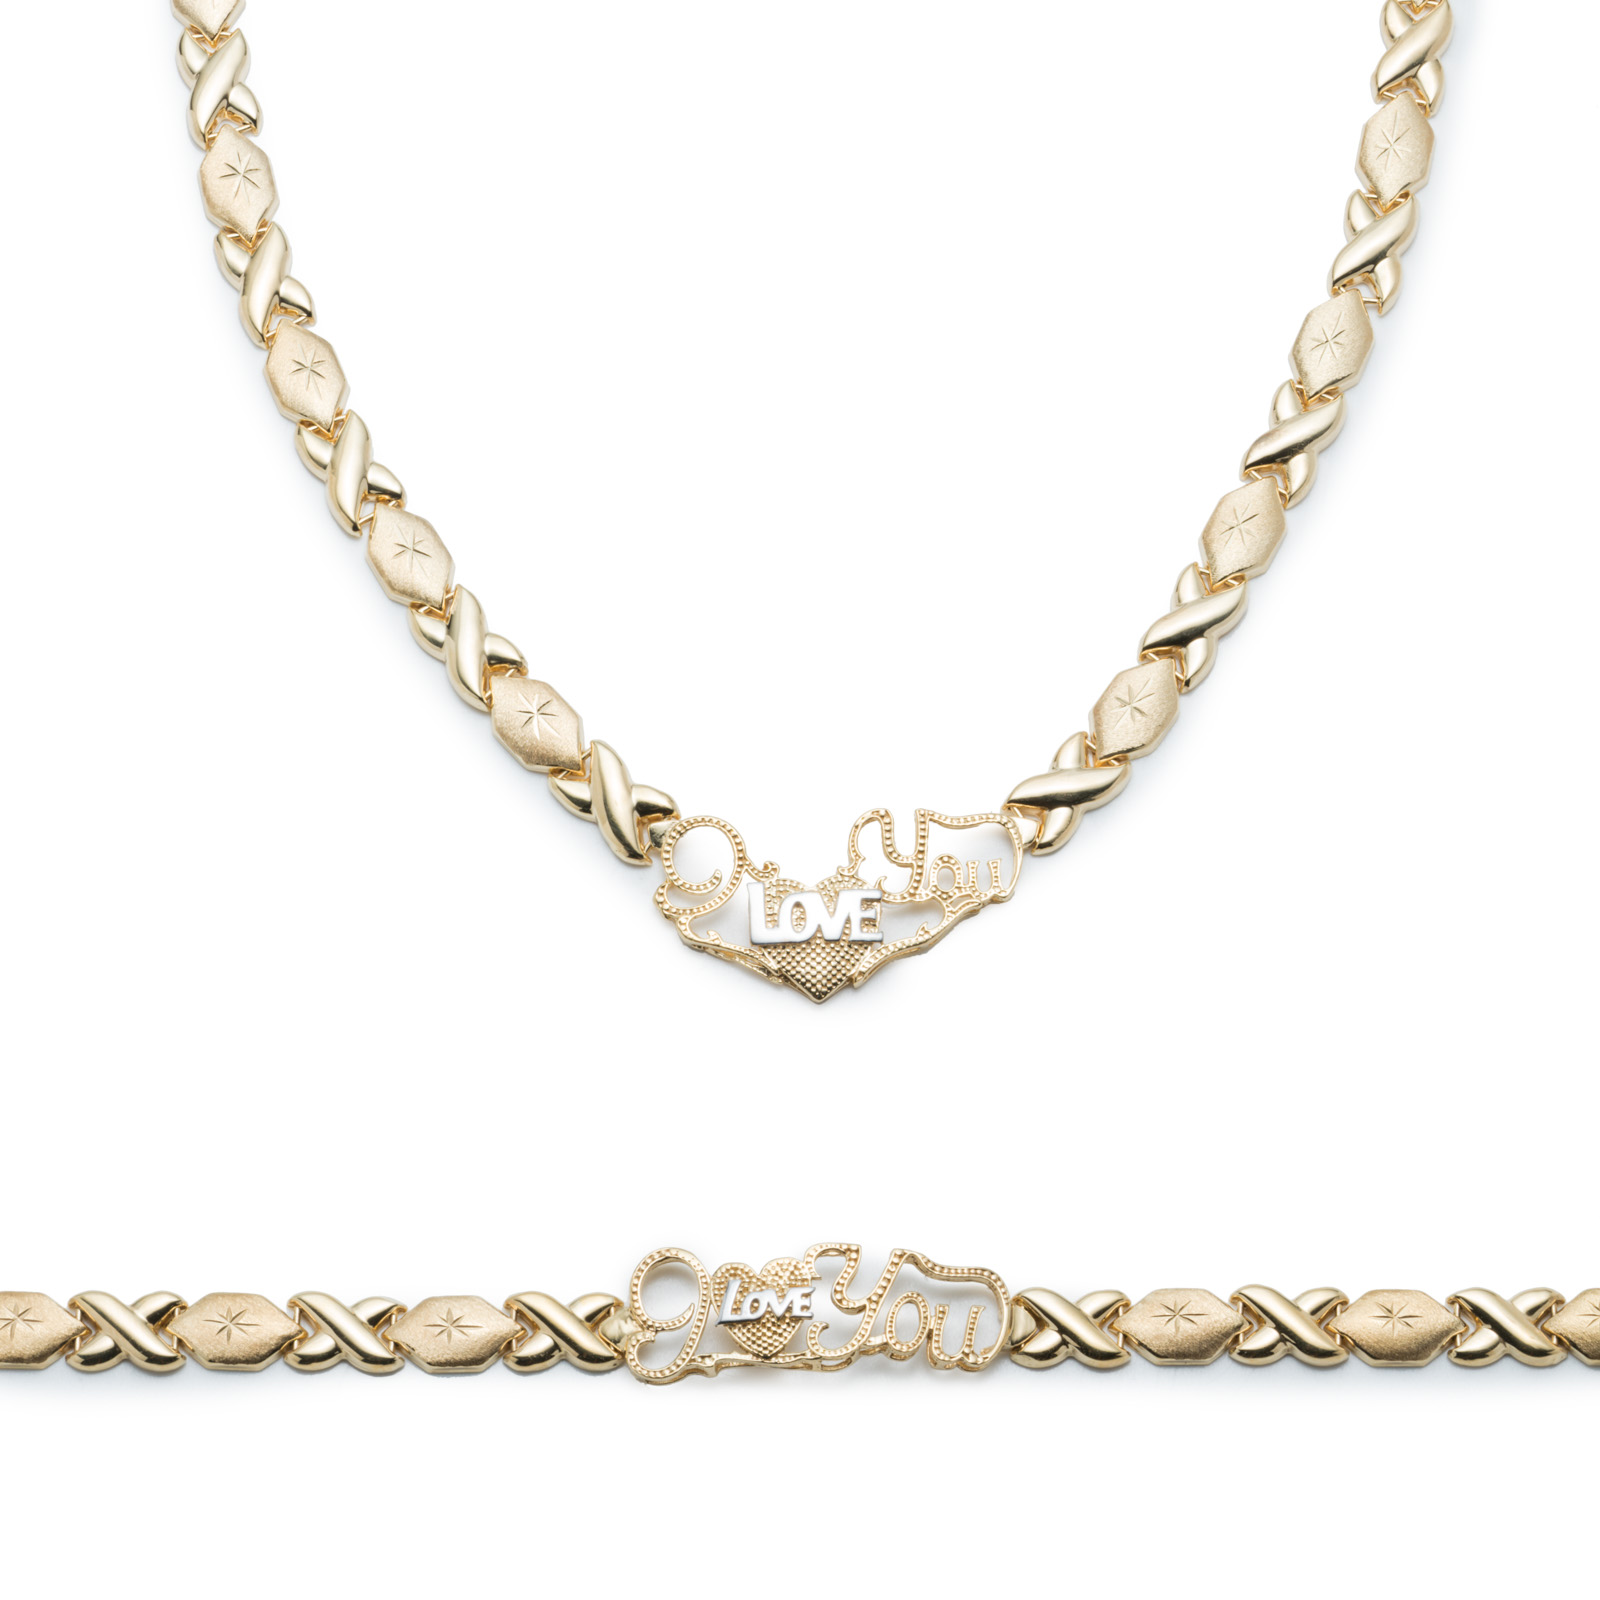 """.925 Sterling Silver Stampato Xoxo Hugs and Kisses with Heart """"I Love You"""" Bracelet and Necklace Set... by Glad Gold"""